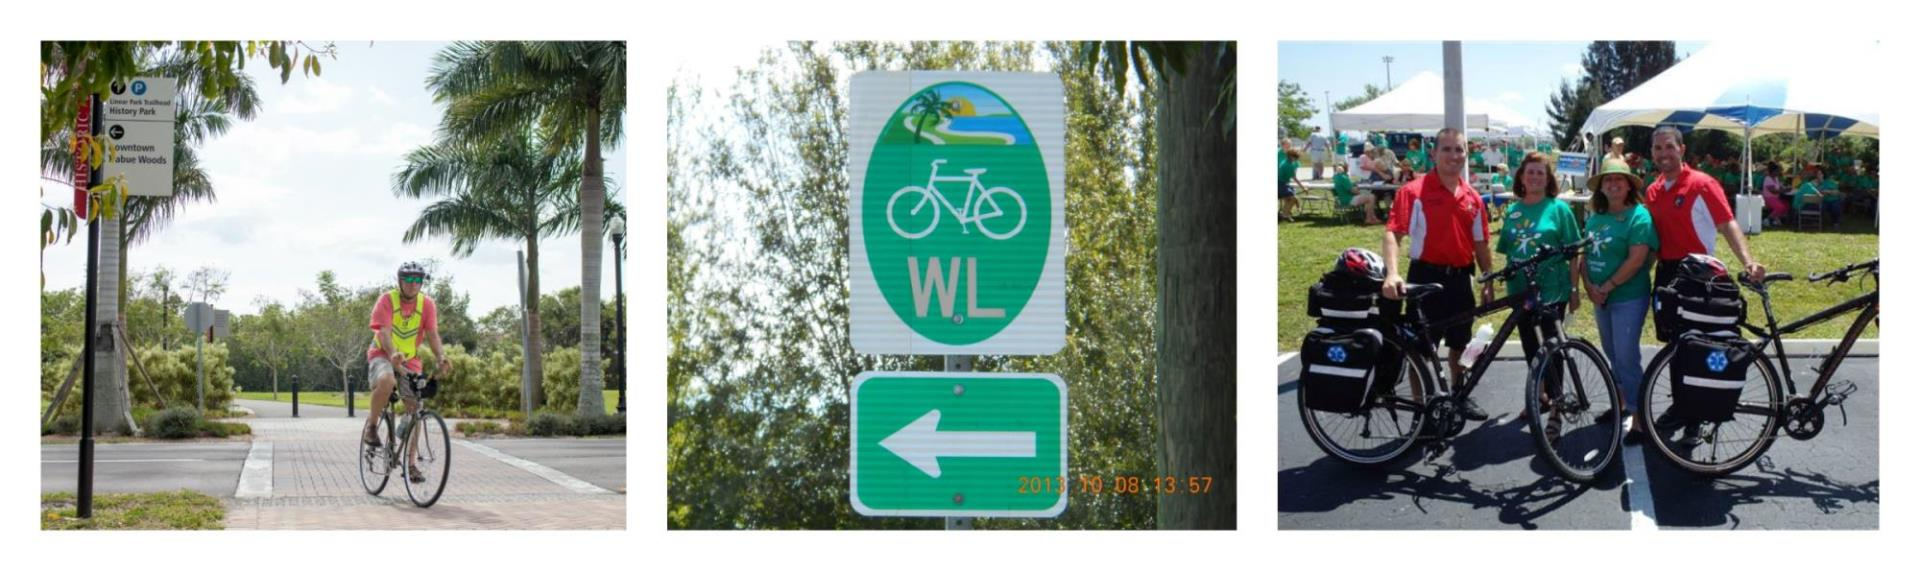 collage of images with bike signs, someone biking, and multiple bikers